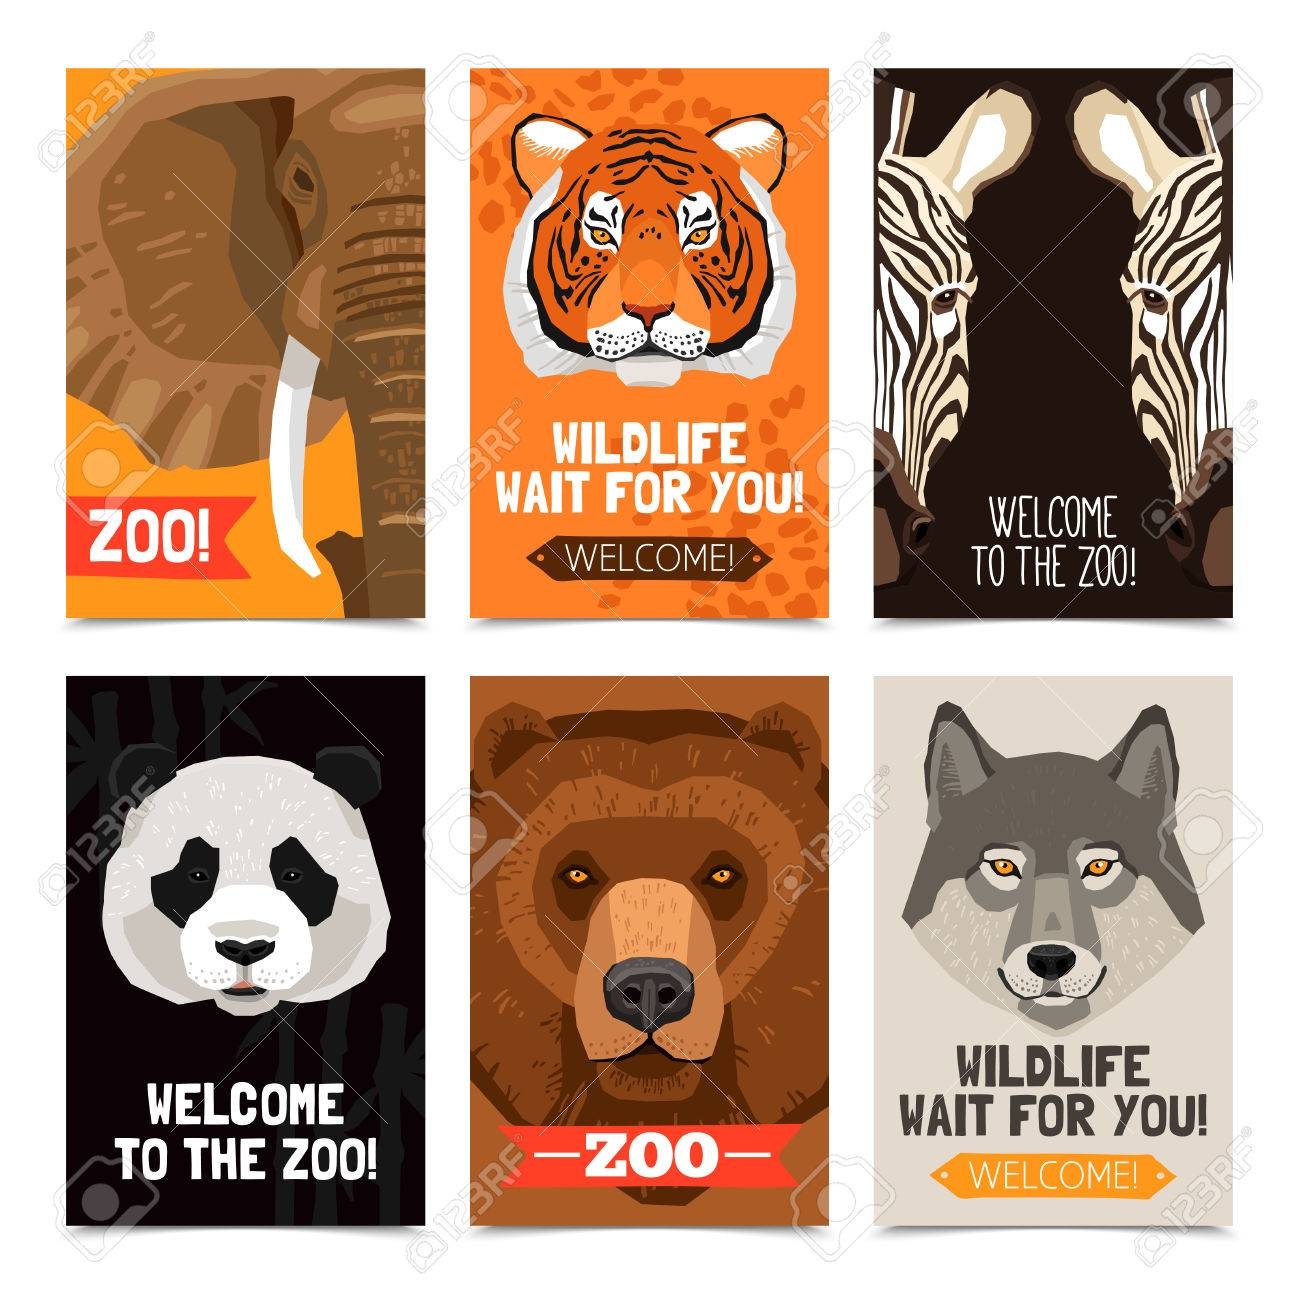 mini posters set with different wild animals heads on each poster